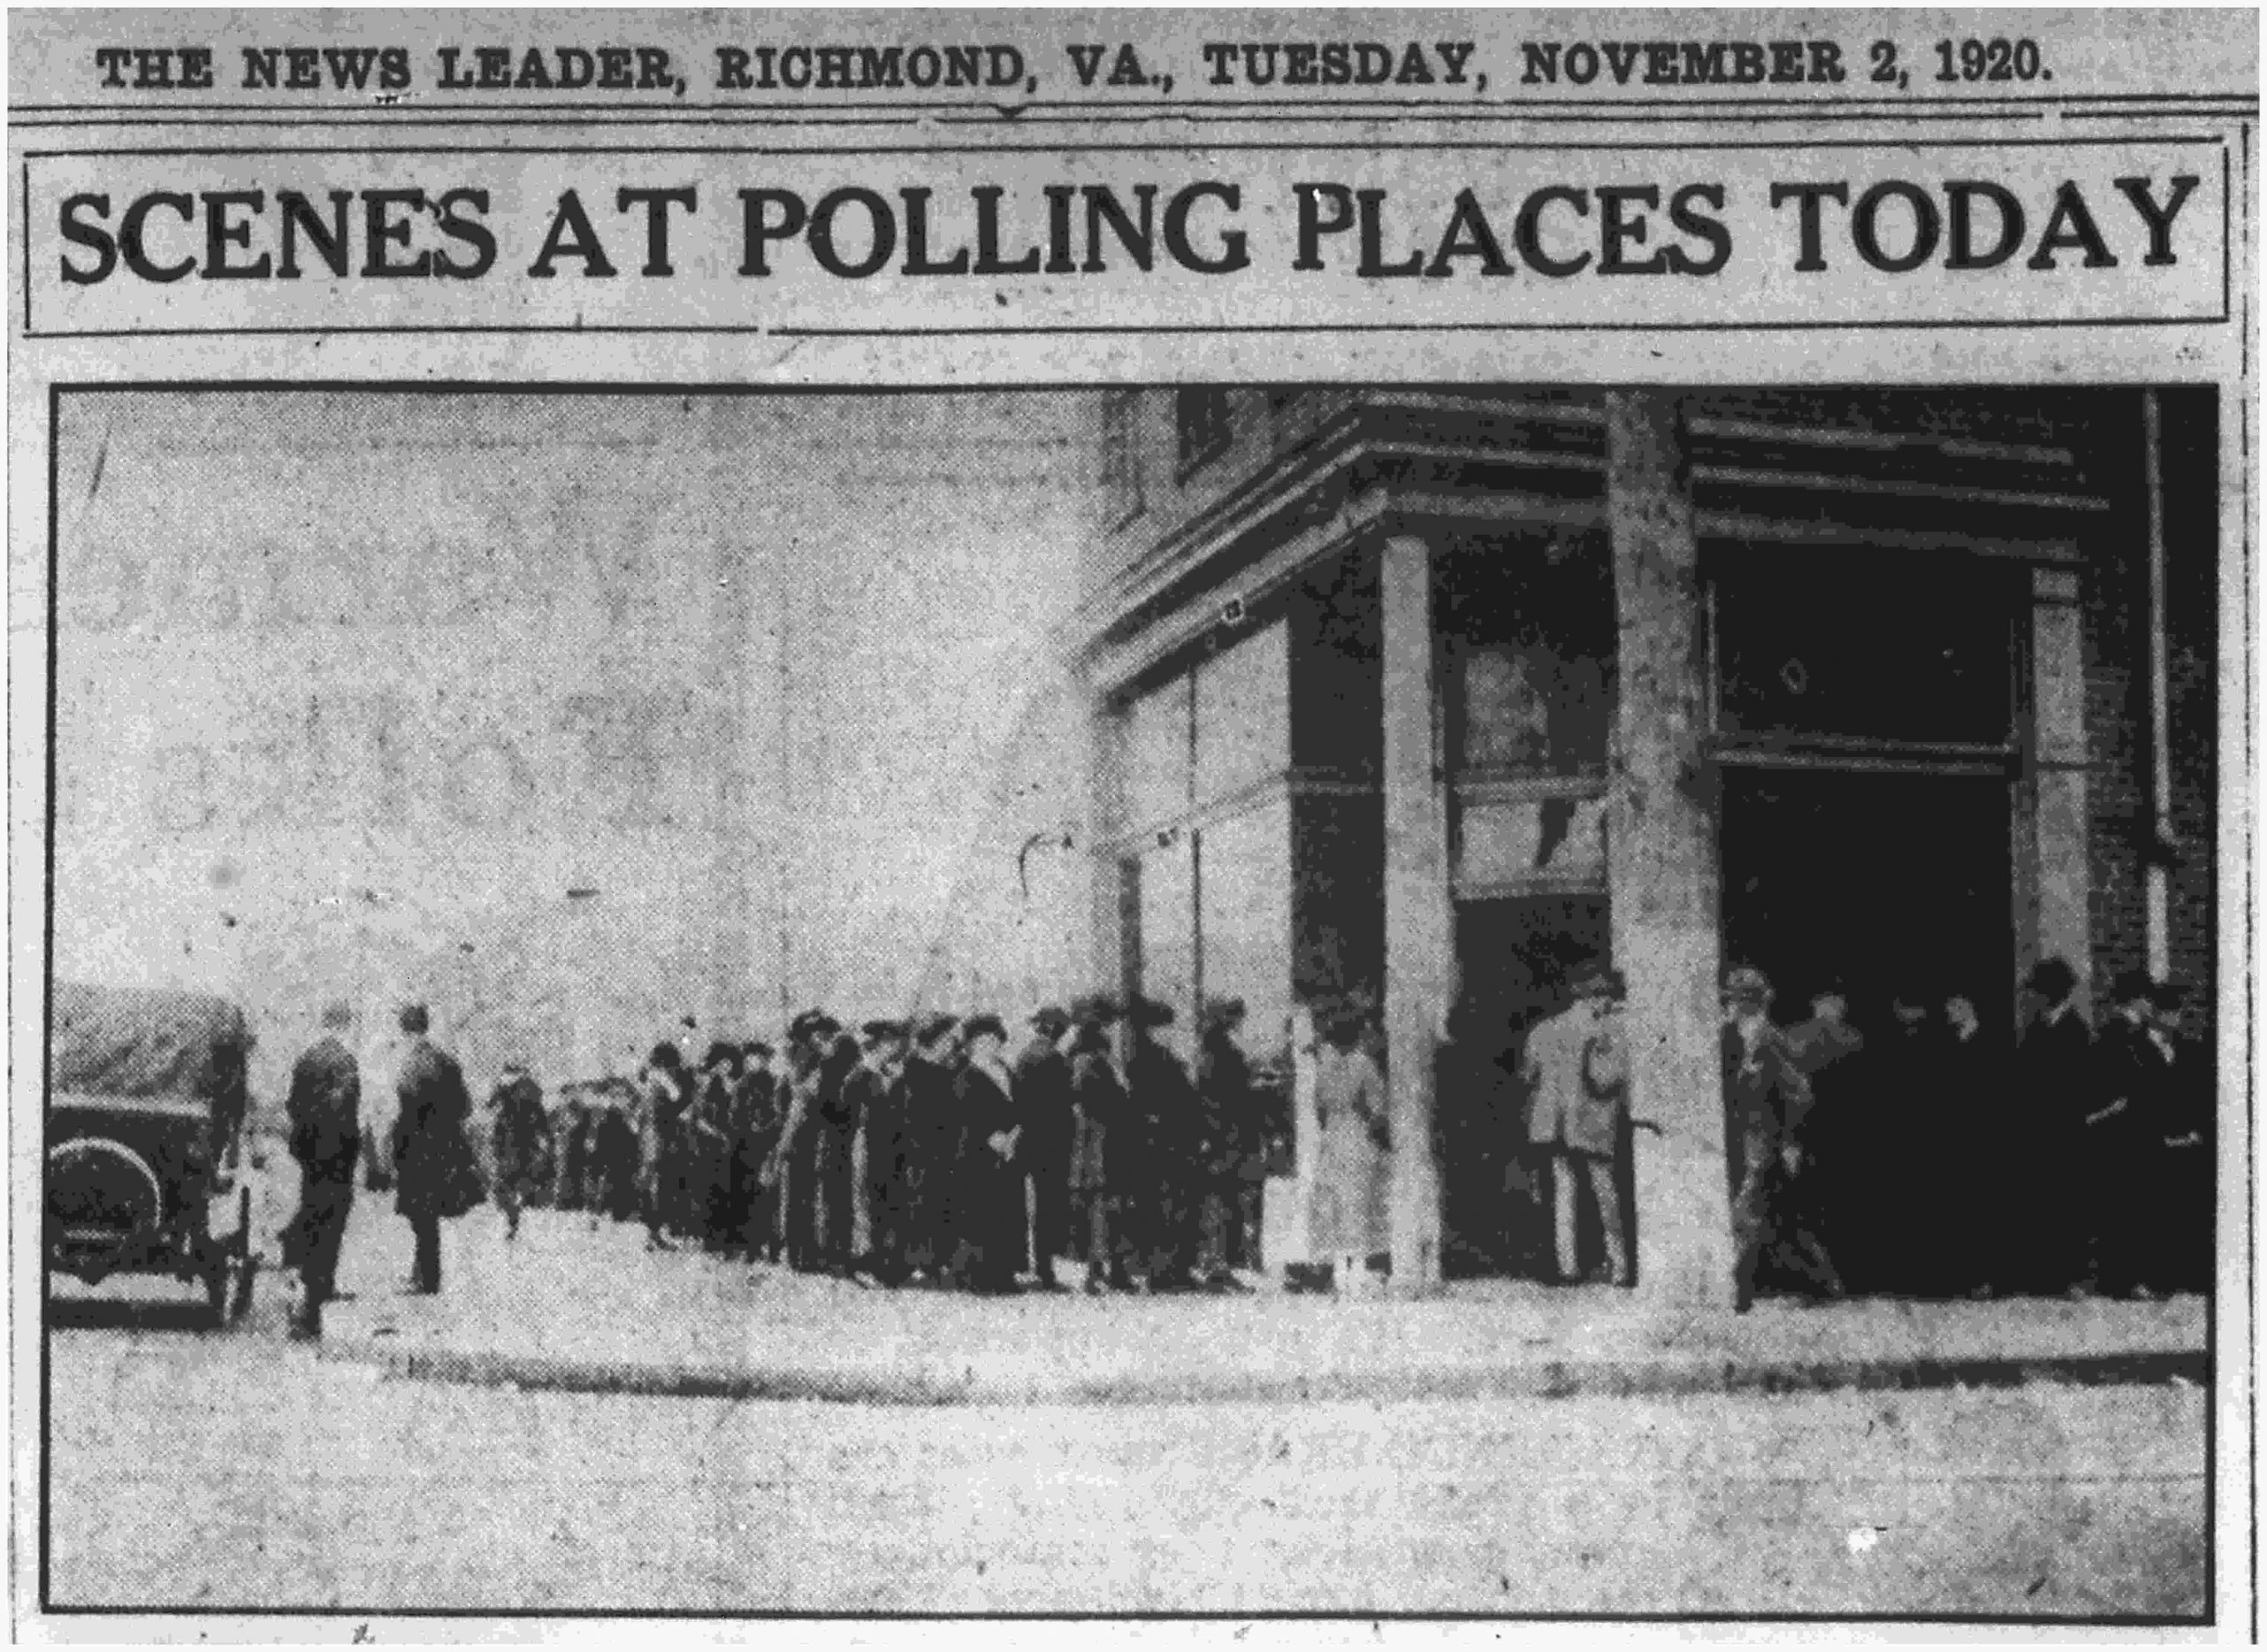 """A day of triumph and dignity"": Virginia Women Vote in 1920"